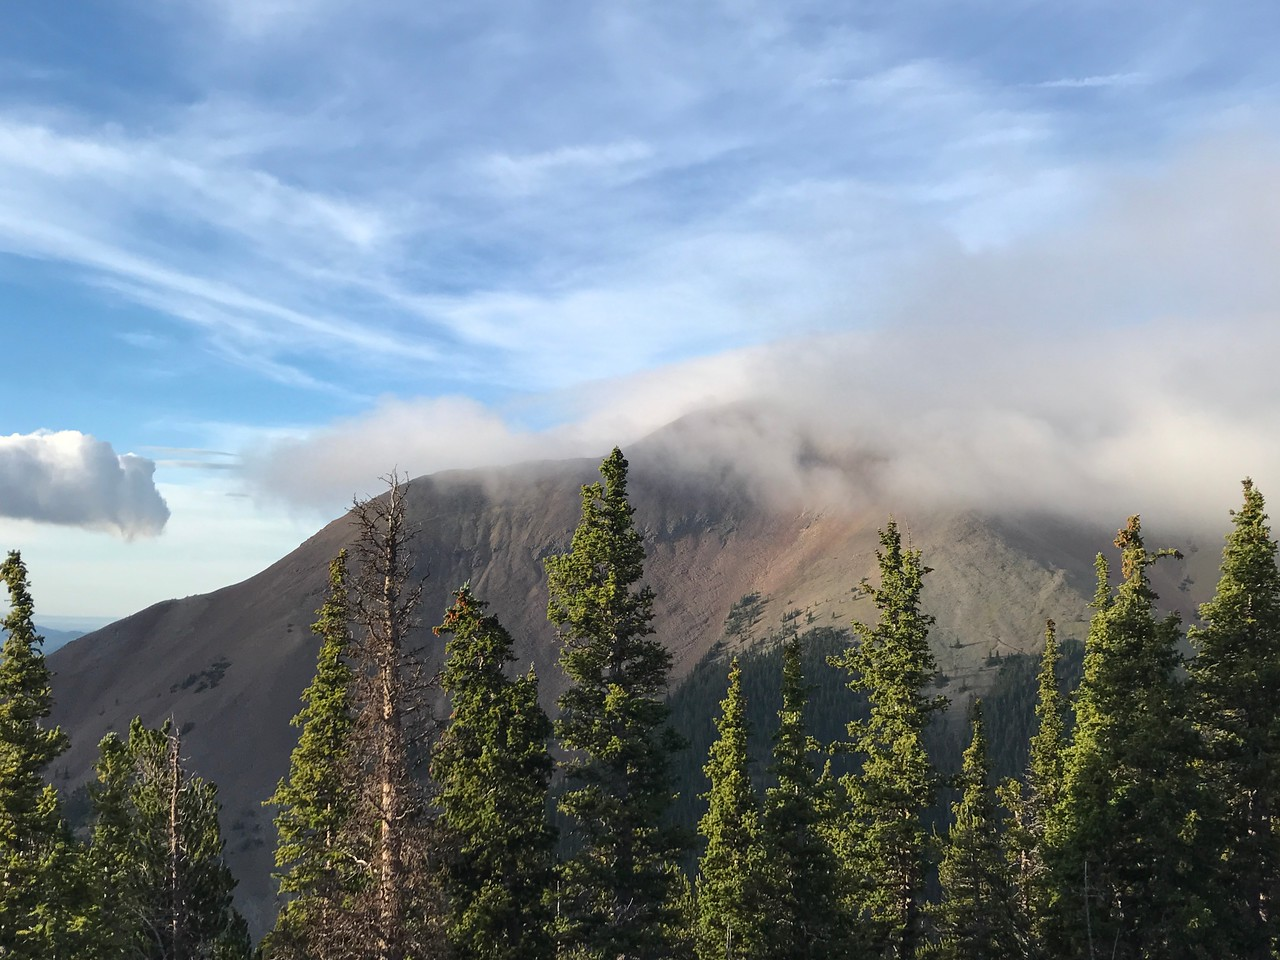 Baldy shrouded in fast-moving clouds